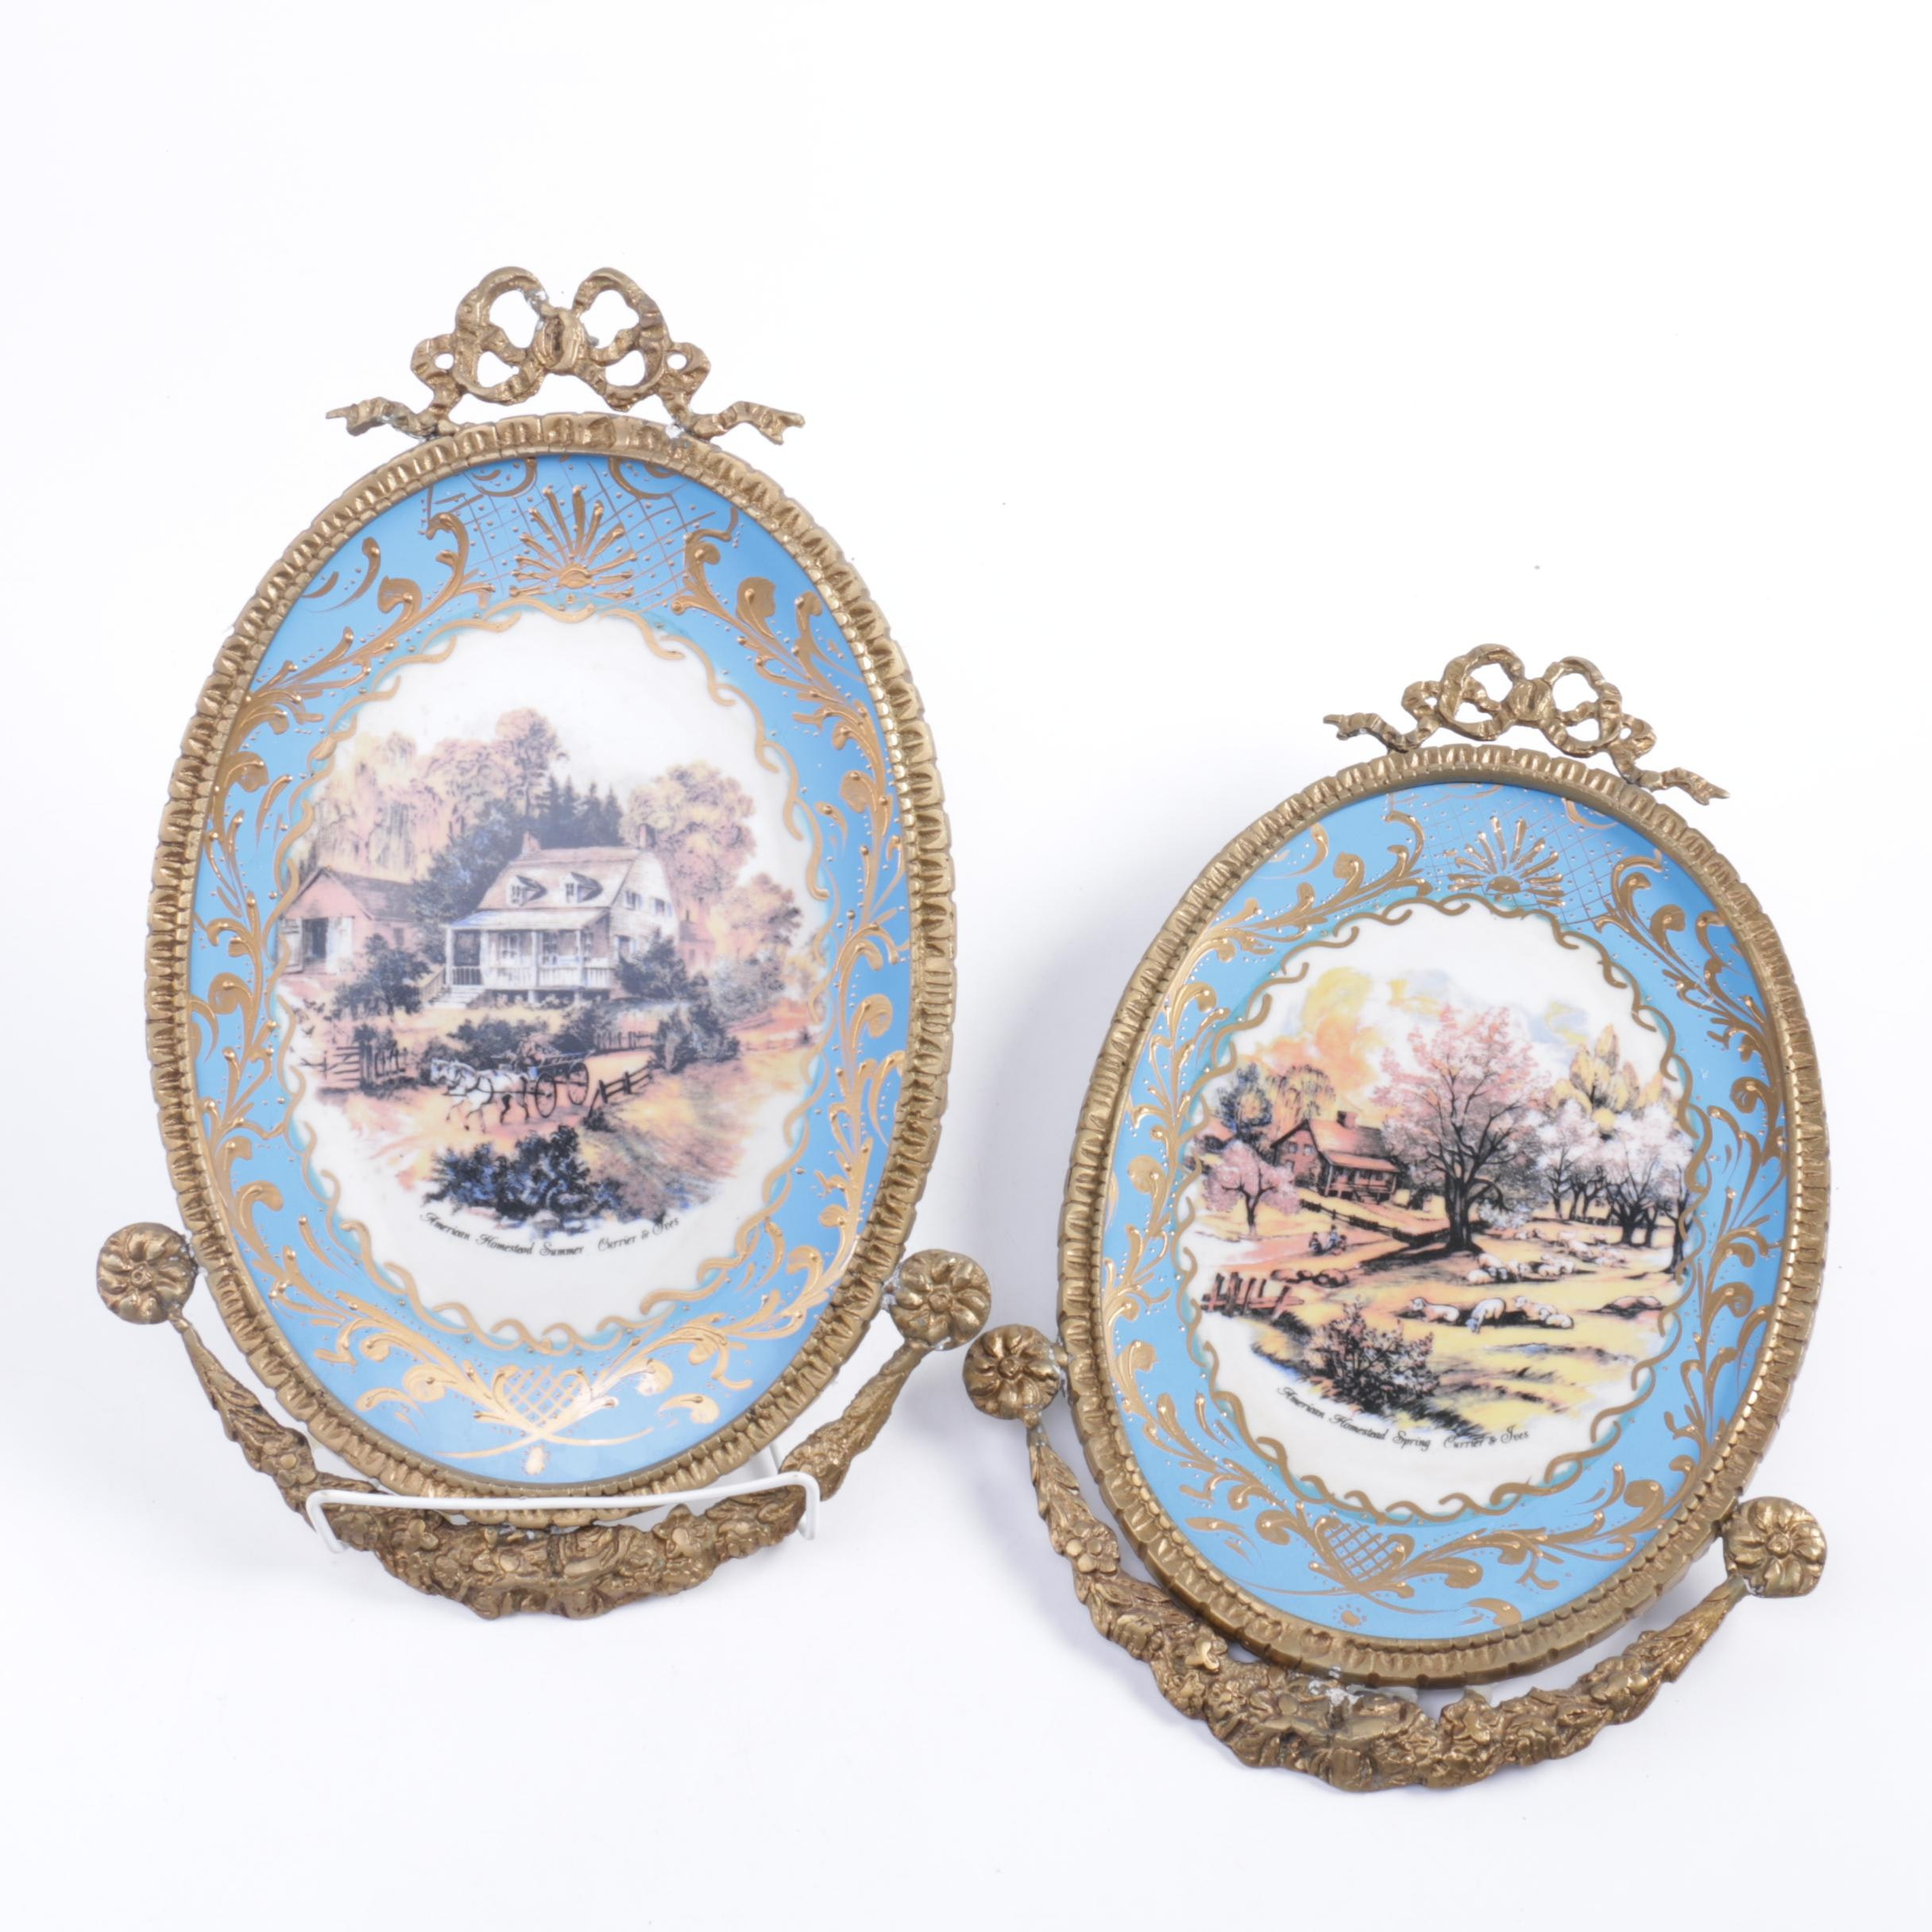 Pair of Ornate Framed Currier and Ives Decorative Plates